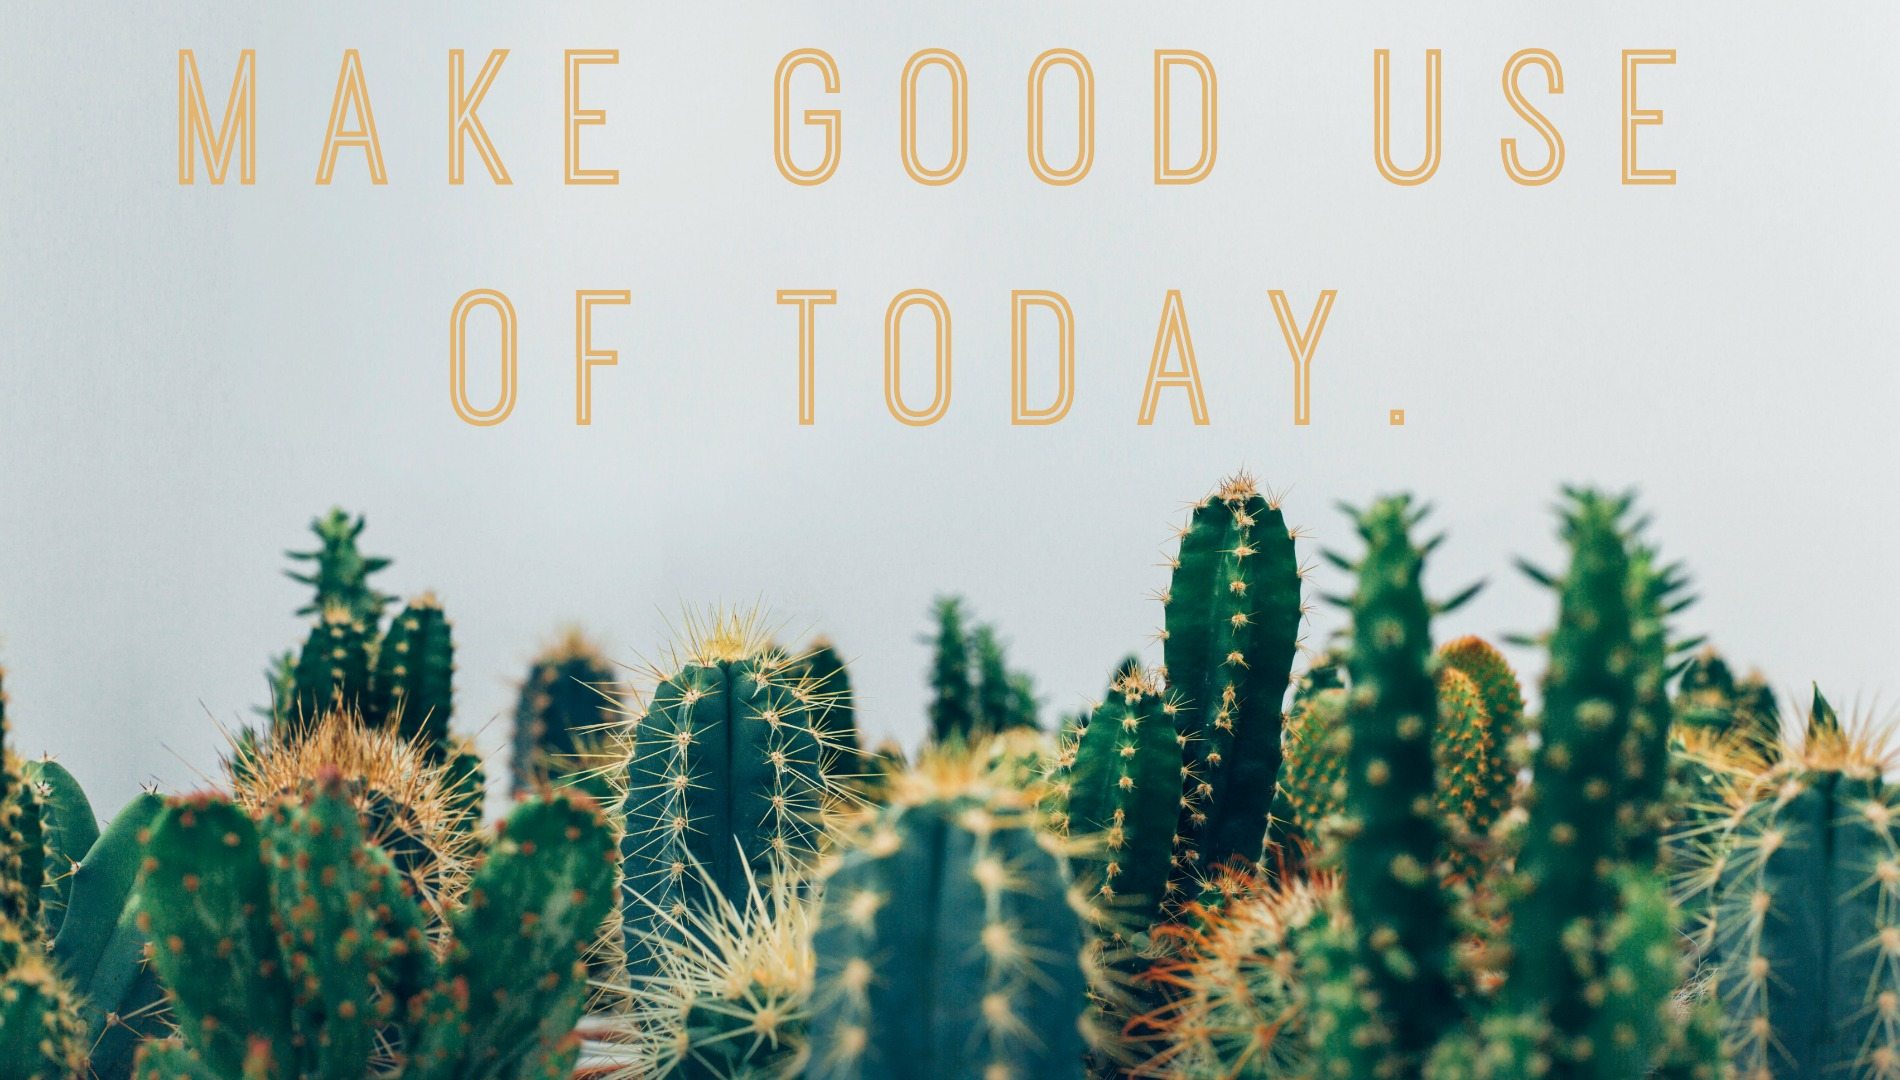 Motivational desktop wallpapers to amp you up for the new